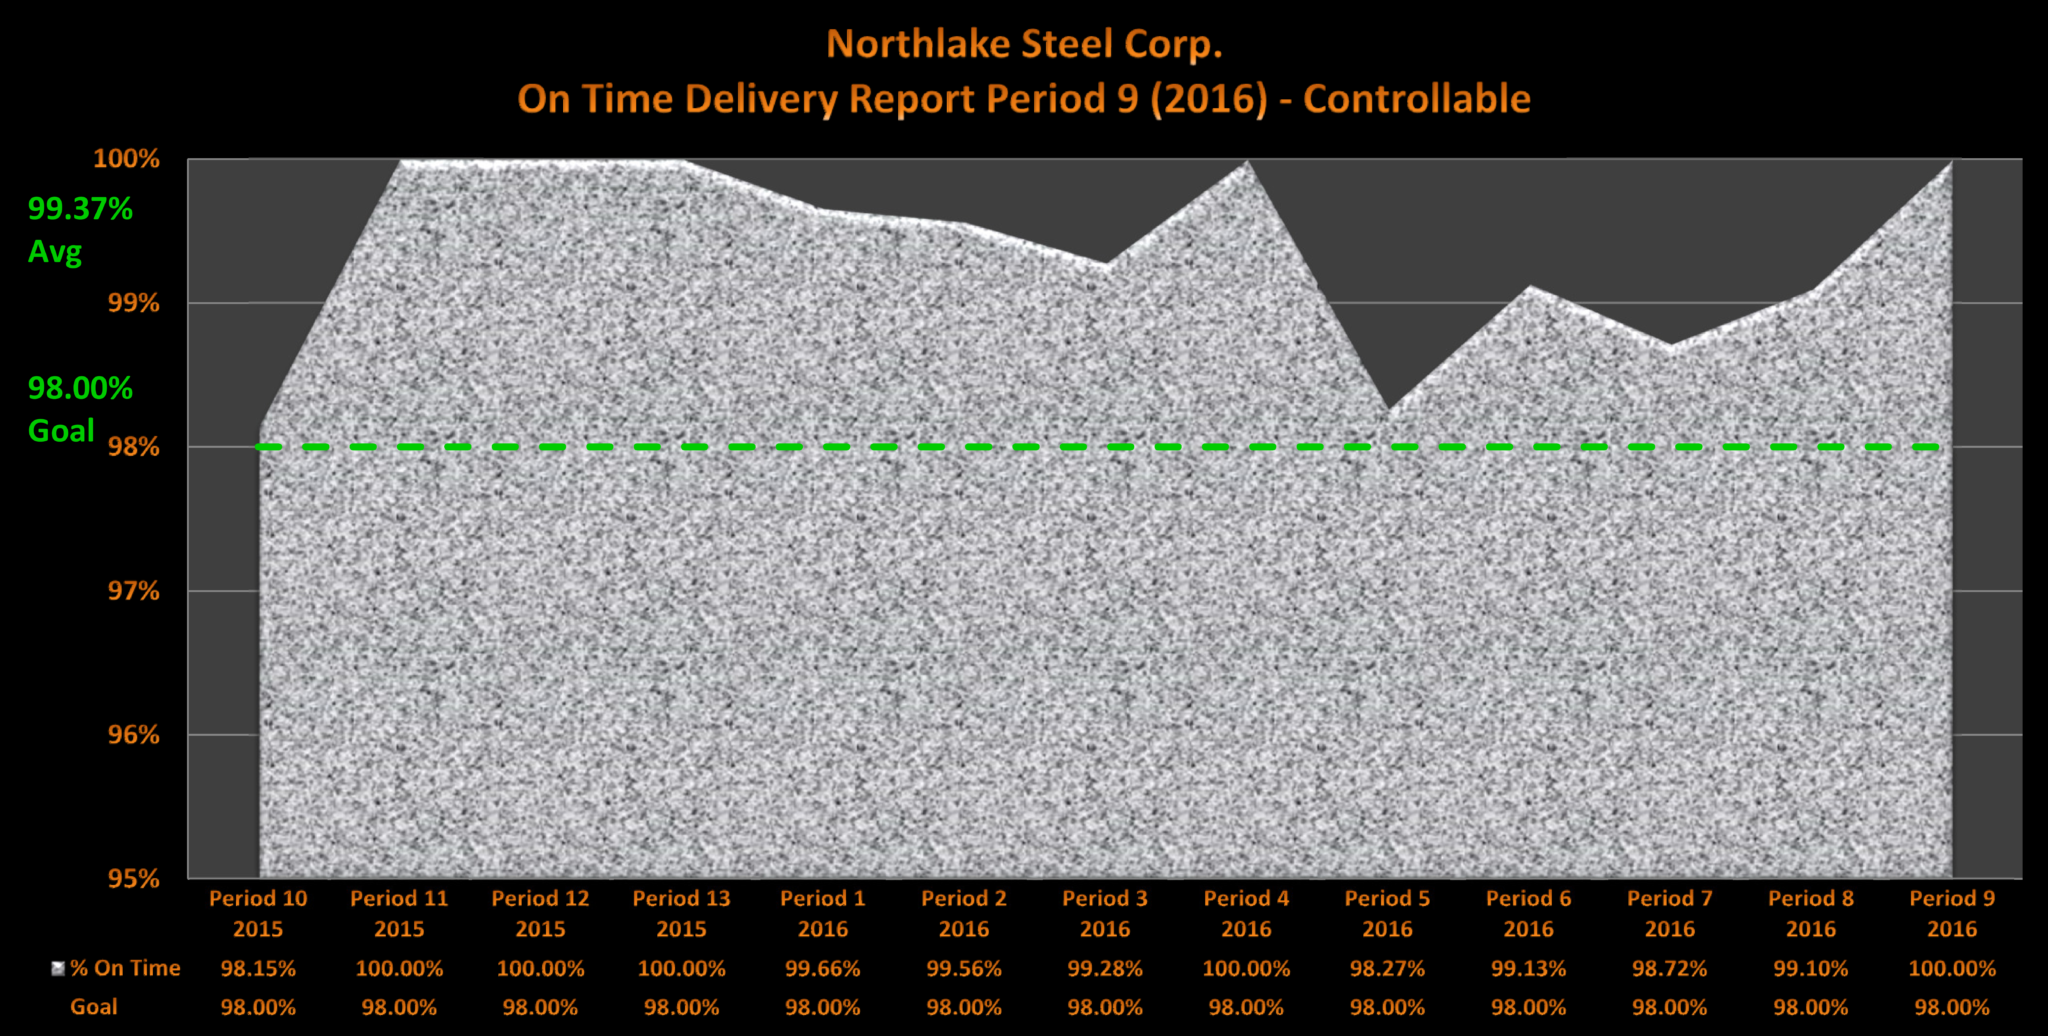 Northlake Steel 2016 Period 9 On Time Delivery